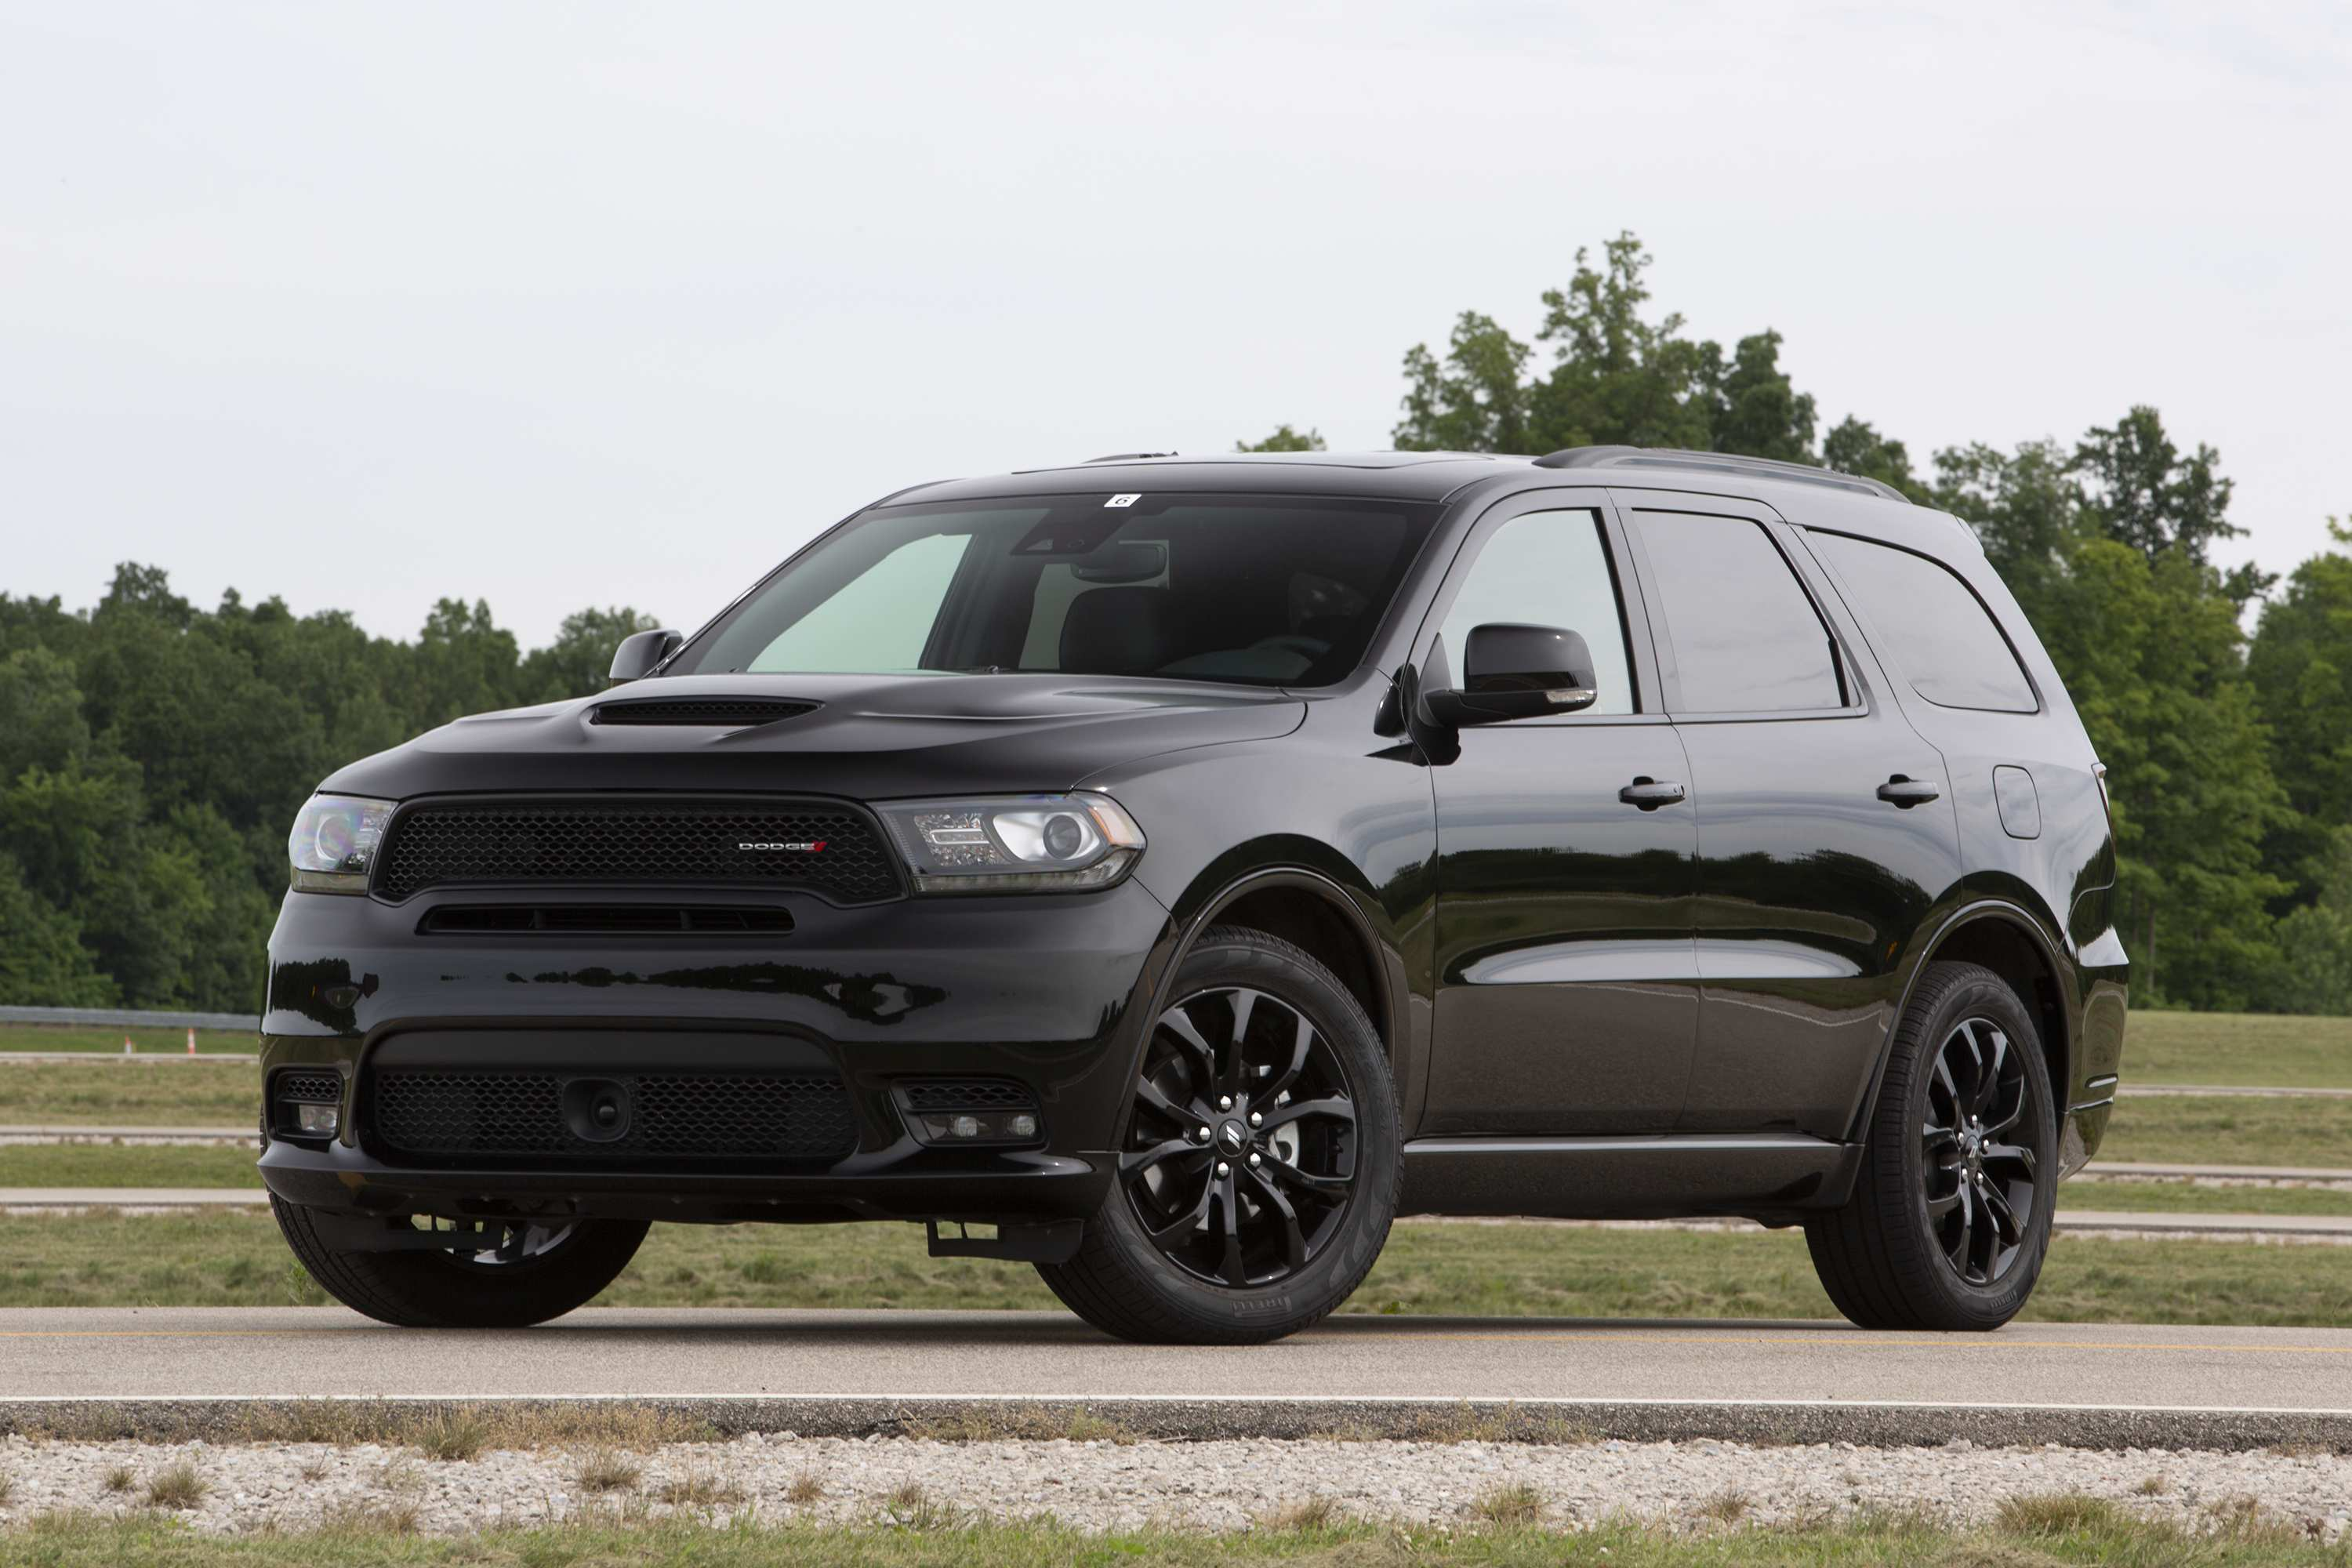 61 A 2020 Dodge Durango Hellcat Price And Release Date